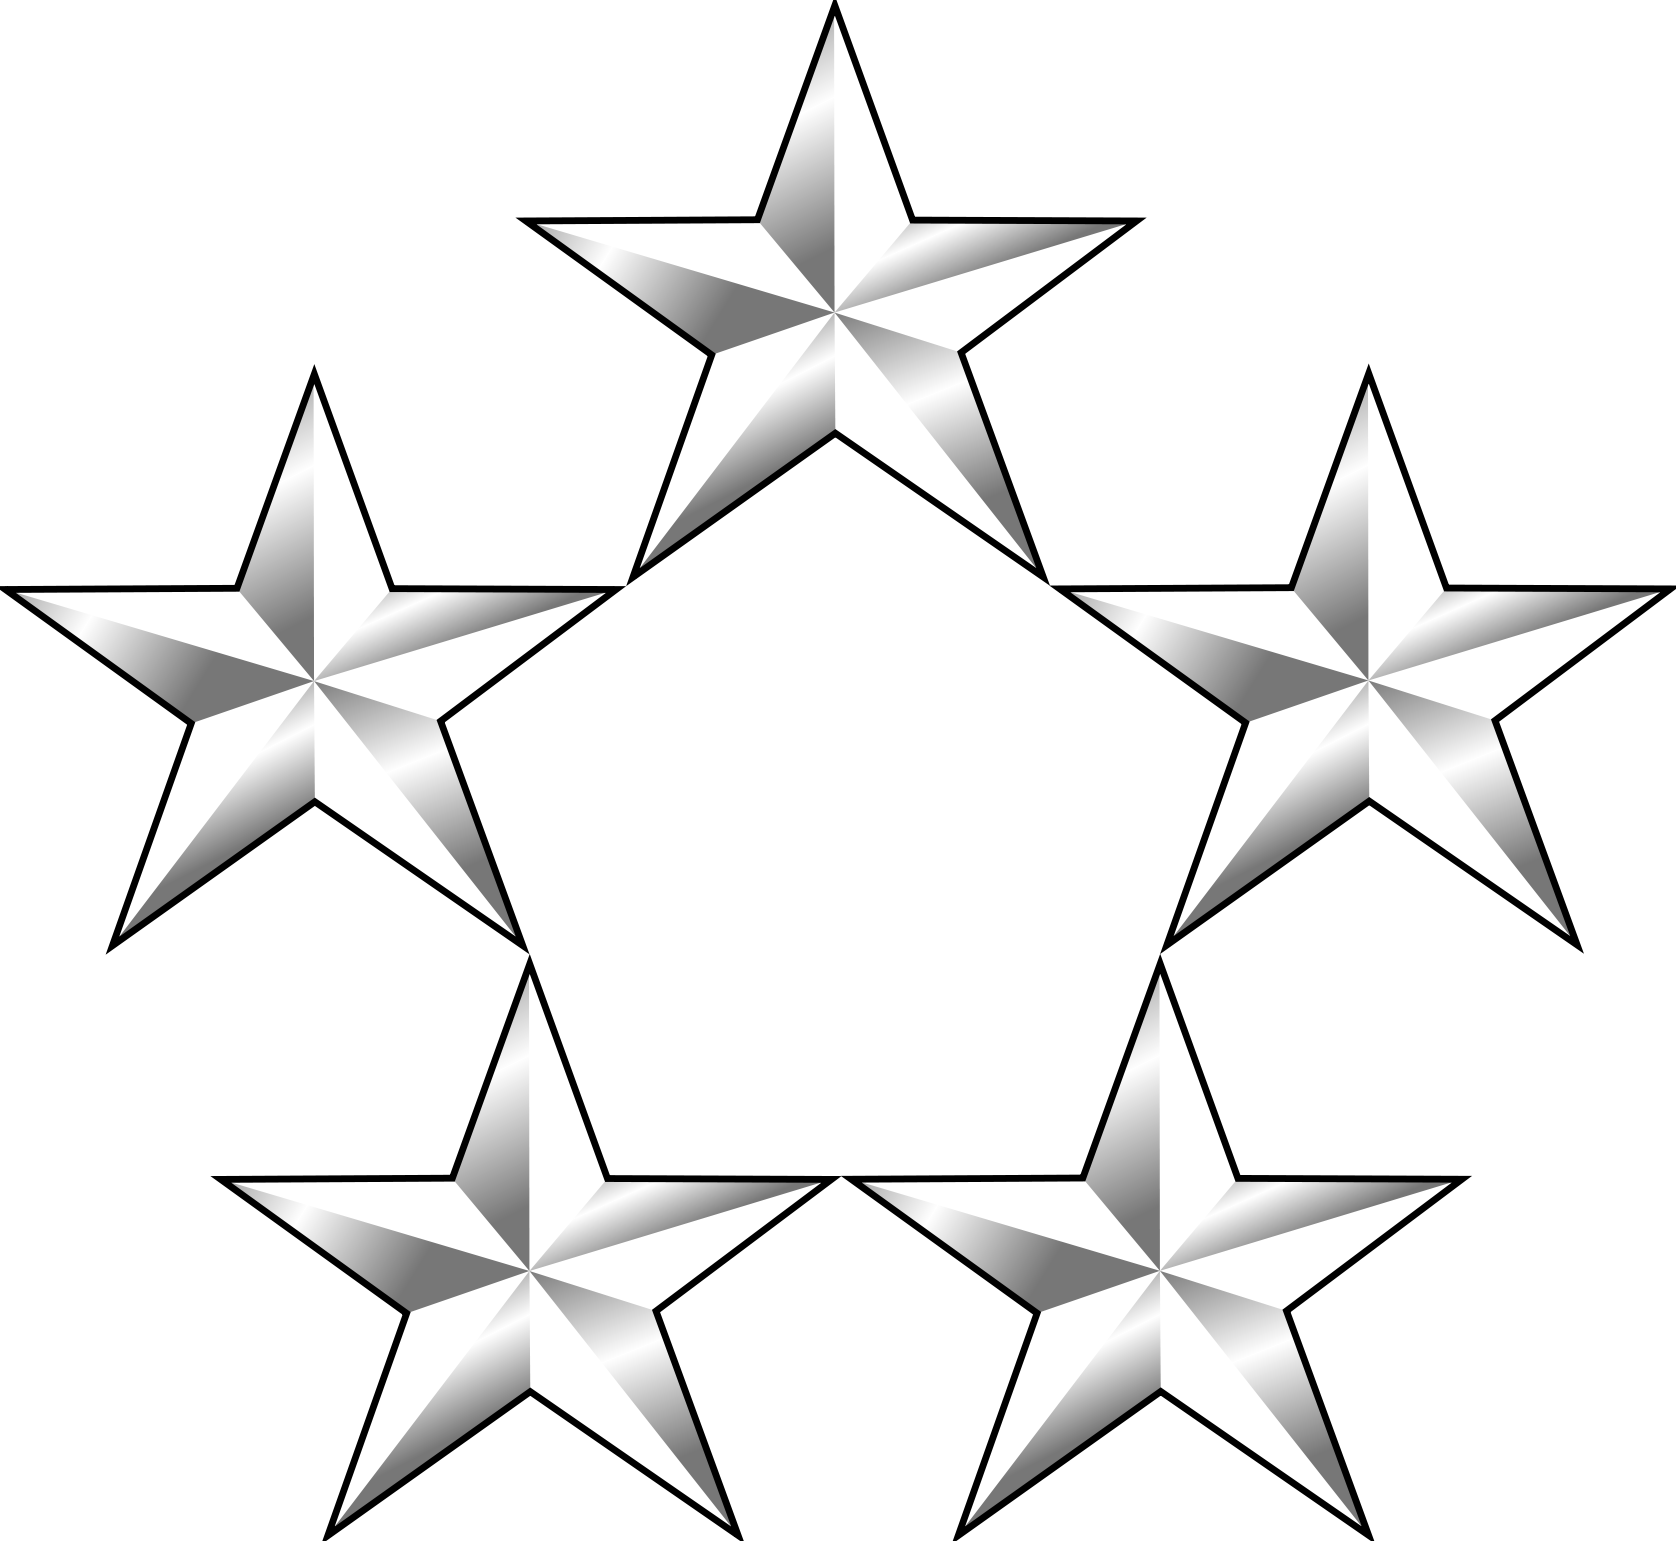 5 star png. File wikimedia commons starpng